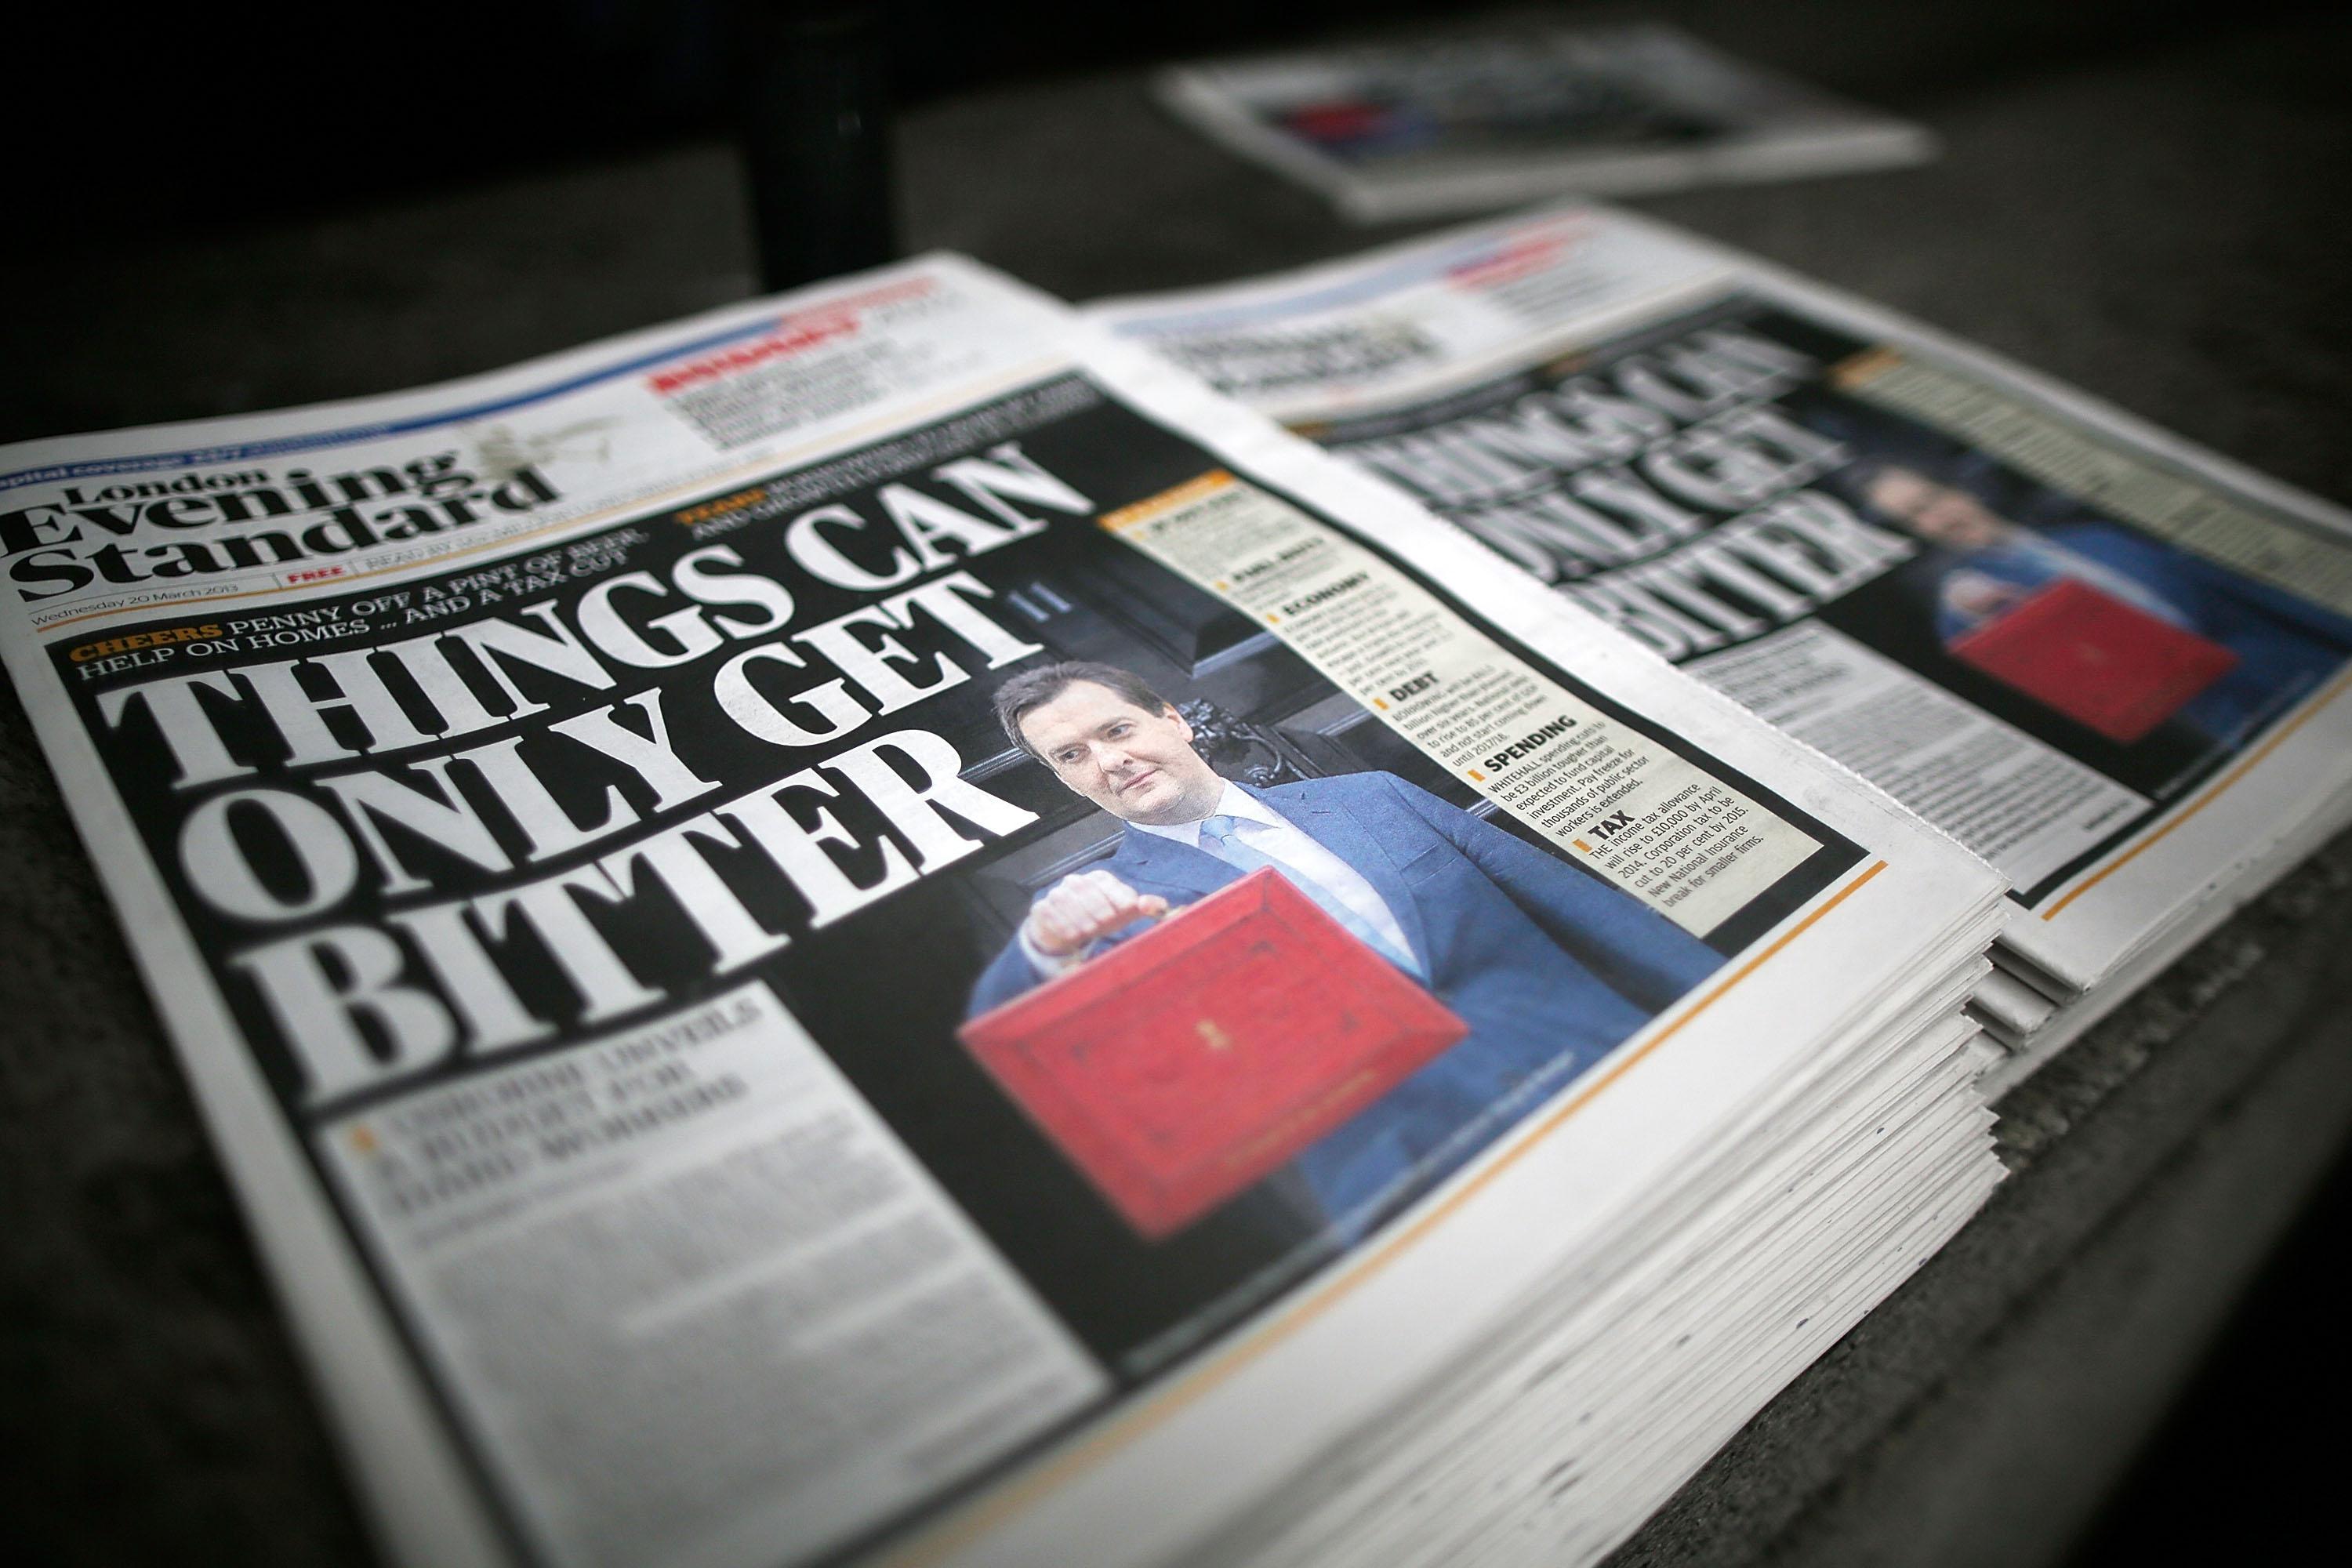 LONDON, ENGLAND - MARCH 20:  The London Evening Standards carries a front page story on the Chancellor George Osborne's budget, which was leaked on the paper's Twitter account, prior to the Chancellor's Commons statement on March 20, 2013 in London, England. The Chancellor is under pressure after the UK lost its AAA credit rating last month and the lack of growth in the economy, is predicted to reveal plans to continue with his austerity strategy to cut the UK's deficit. It is likely that Mr. Osborne will announce further spending cuts to Whitehall departments with the savings put in place to boost large scale infrastructure projects, with both tax breaks on childcare and a rise in fuel duty also high on the agenda.  (Photo by Matthew Lloyd/Getty Images)